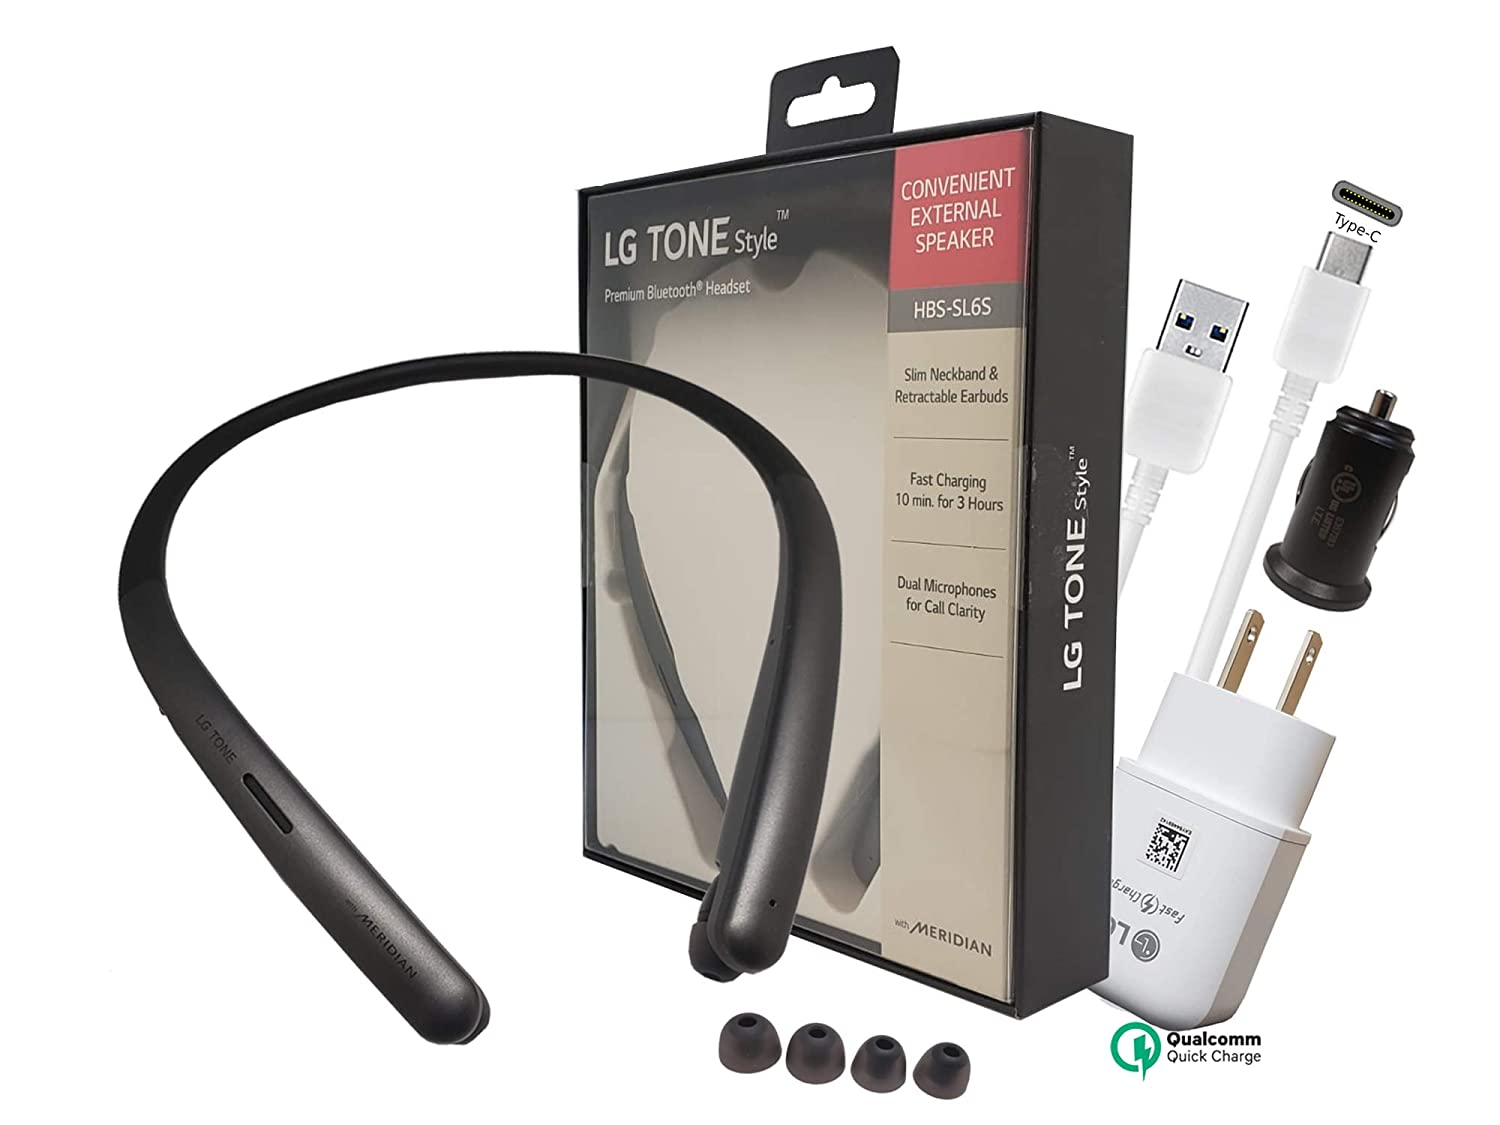 LG Tone Style Sl6S Bluetooth Wireless Stereo Headset HBS-SL6S- Hi-Fi Sound with Car/3.0 Fast Wall Charger 3.0 C Type USB (Retail Packing Kit)